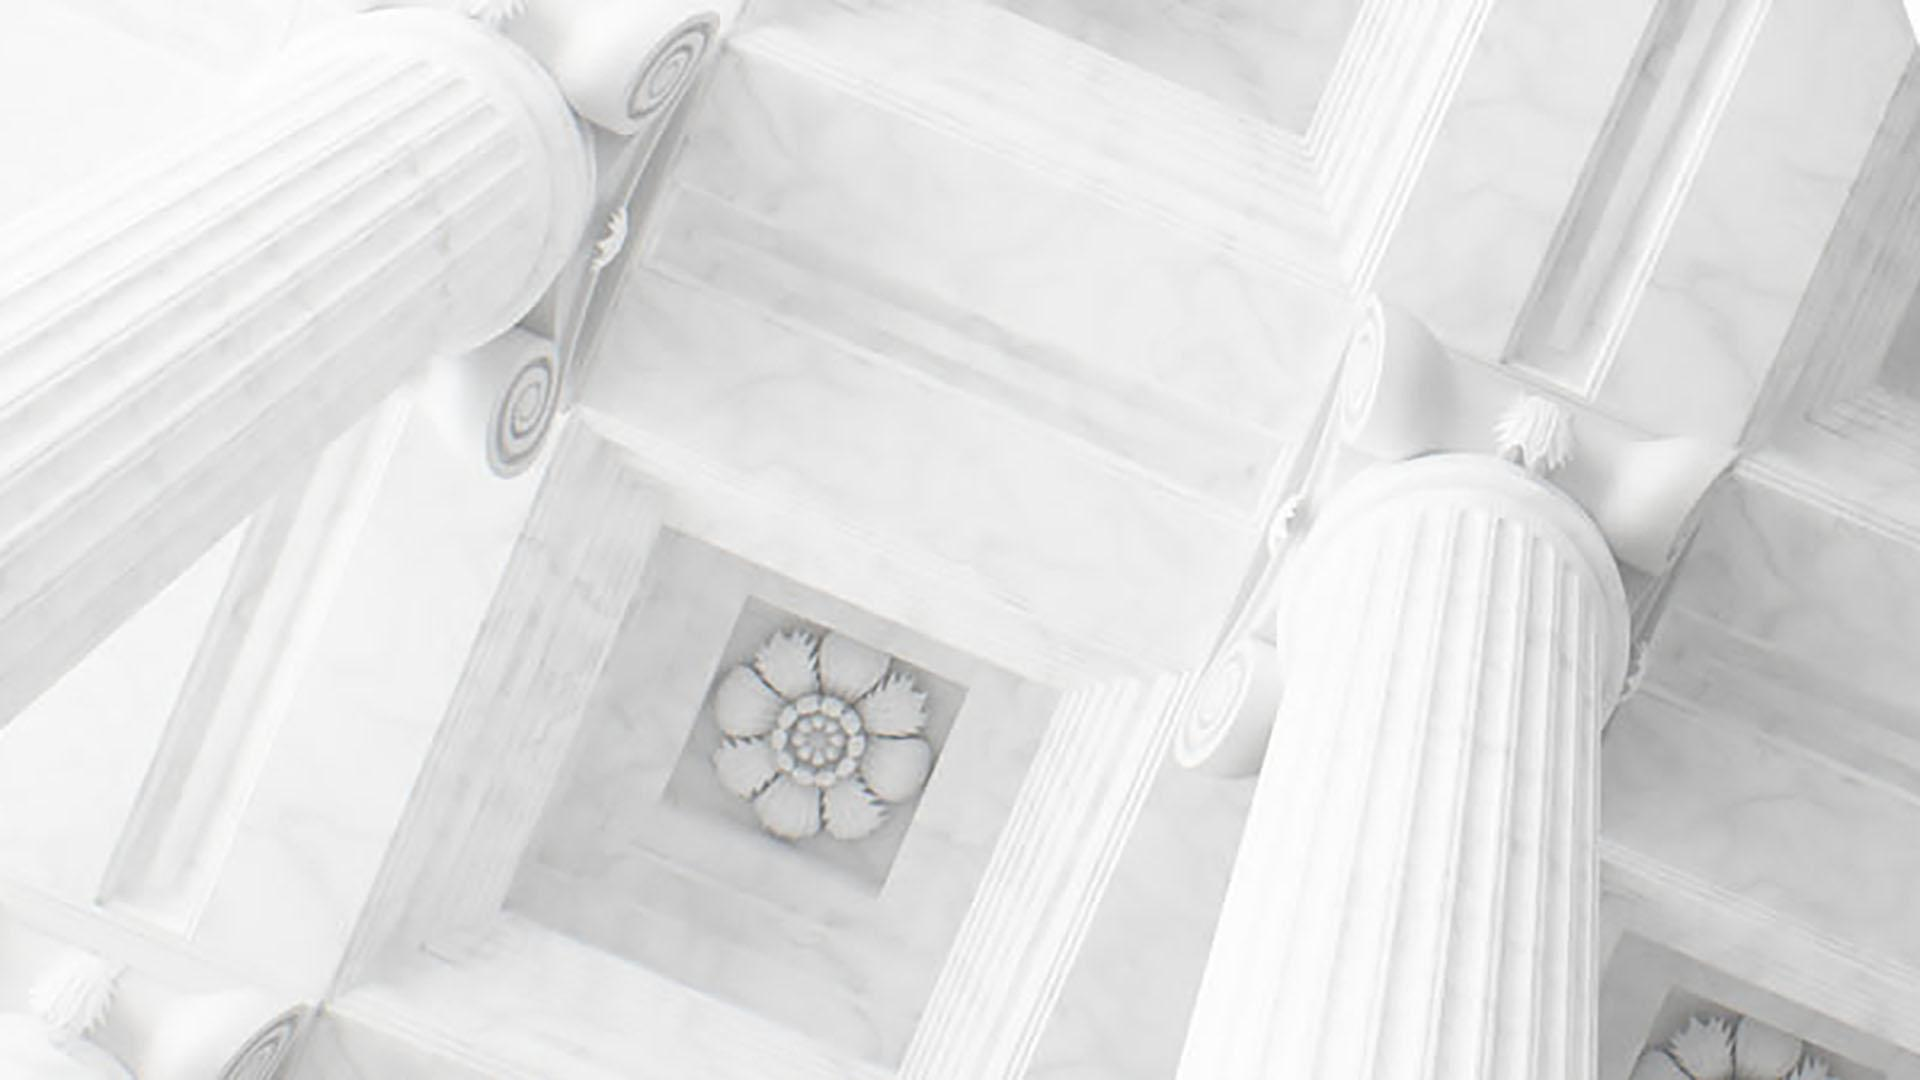 Ceiling of white classical architecture